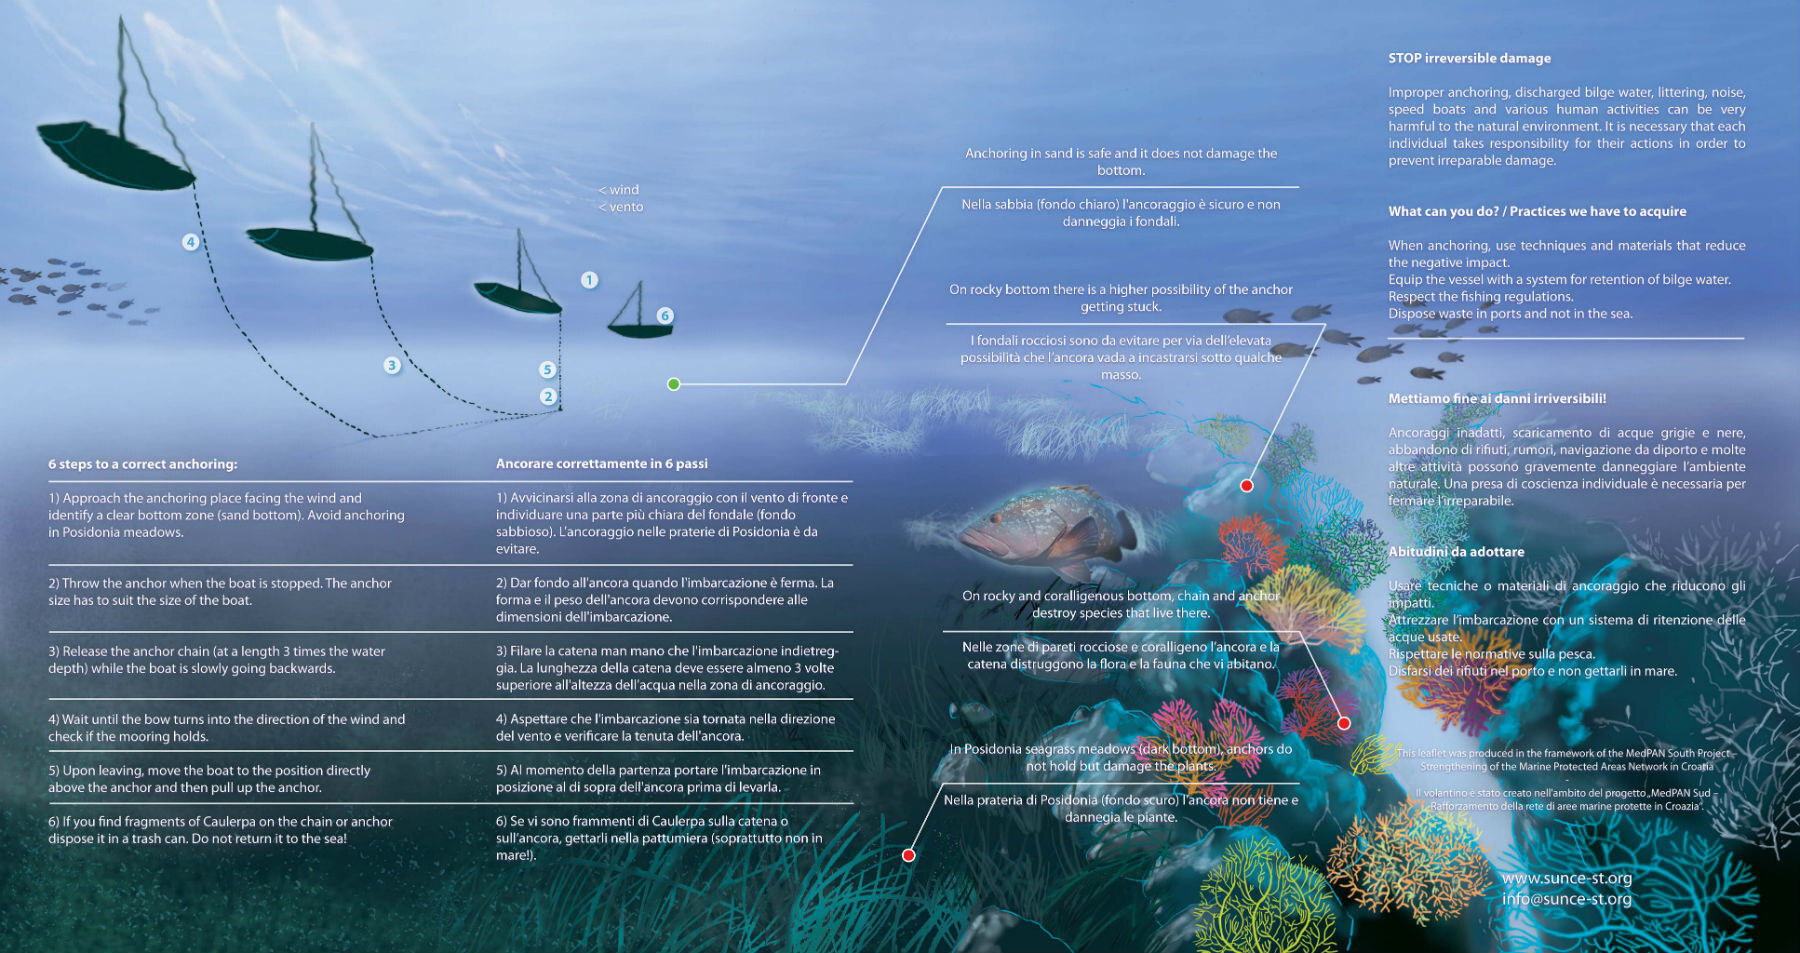 How to reduce impact on marine environment in Croatia